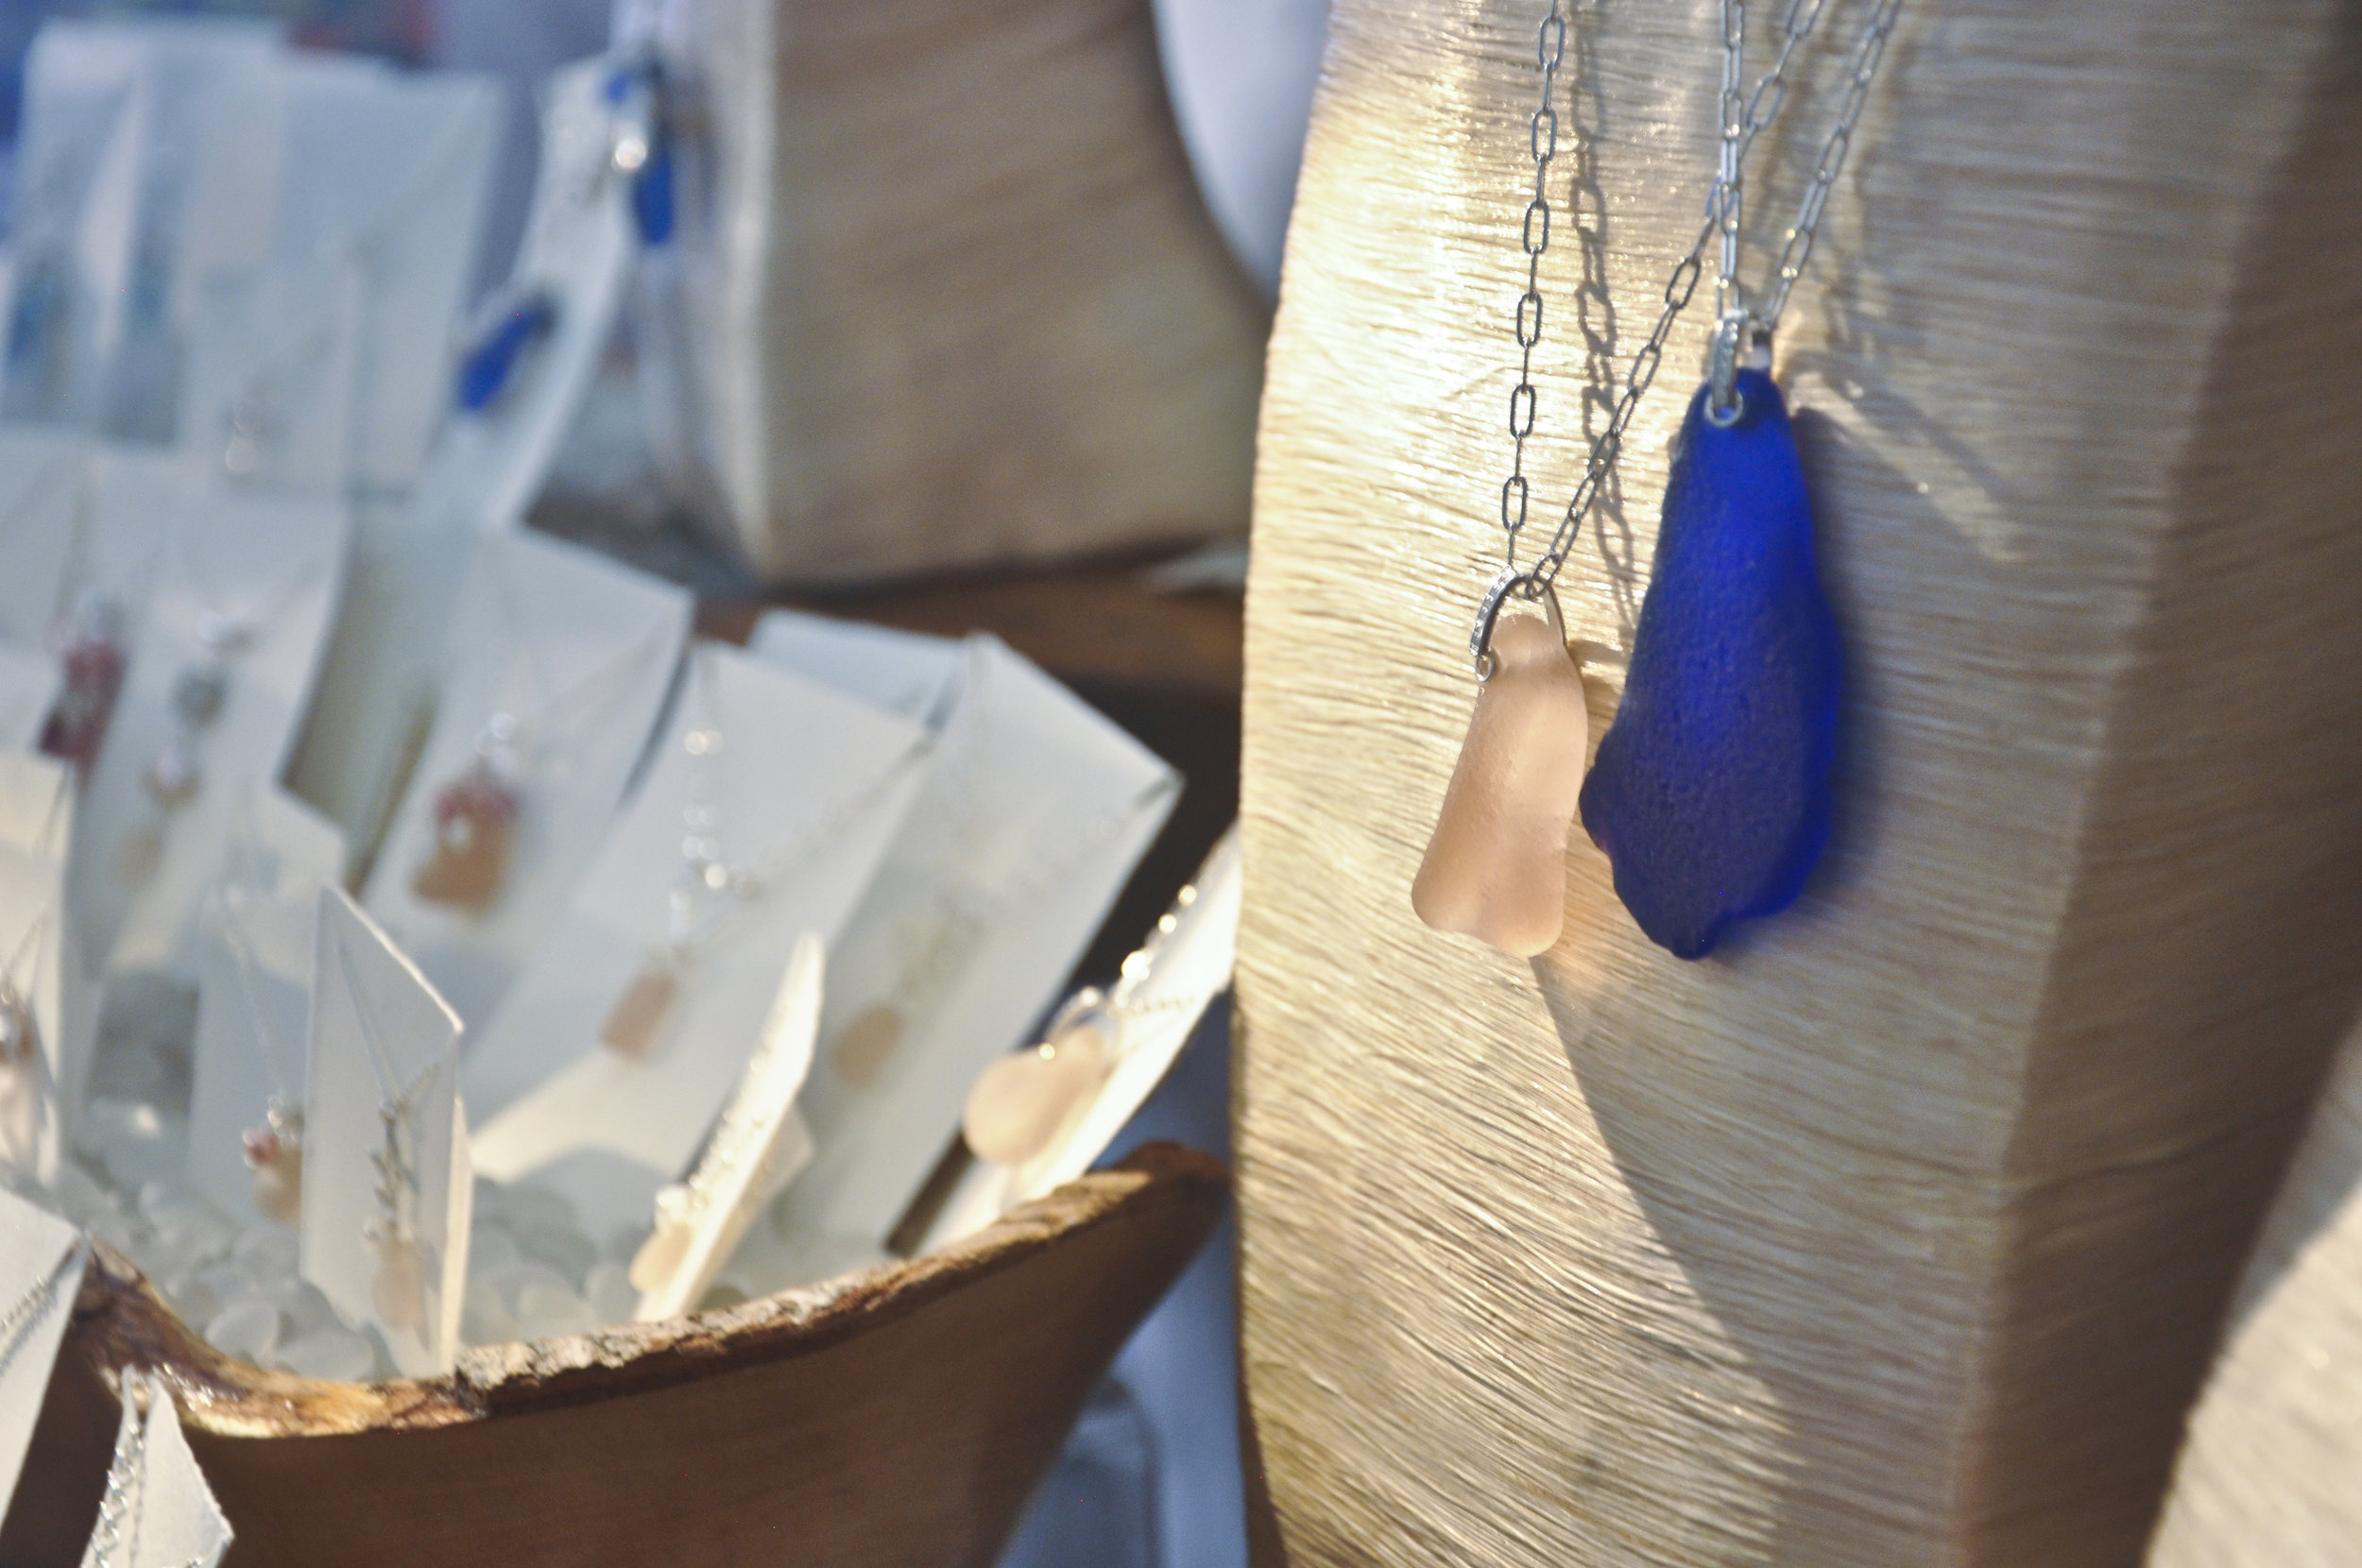 Katie Carren Artisan Sea Glass Jewelry photo by Heidi Kirkpatrick